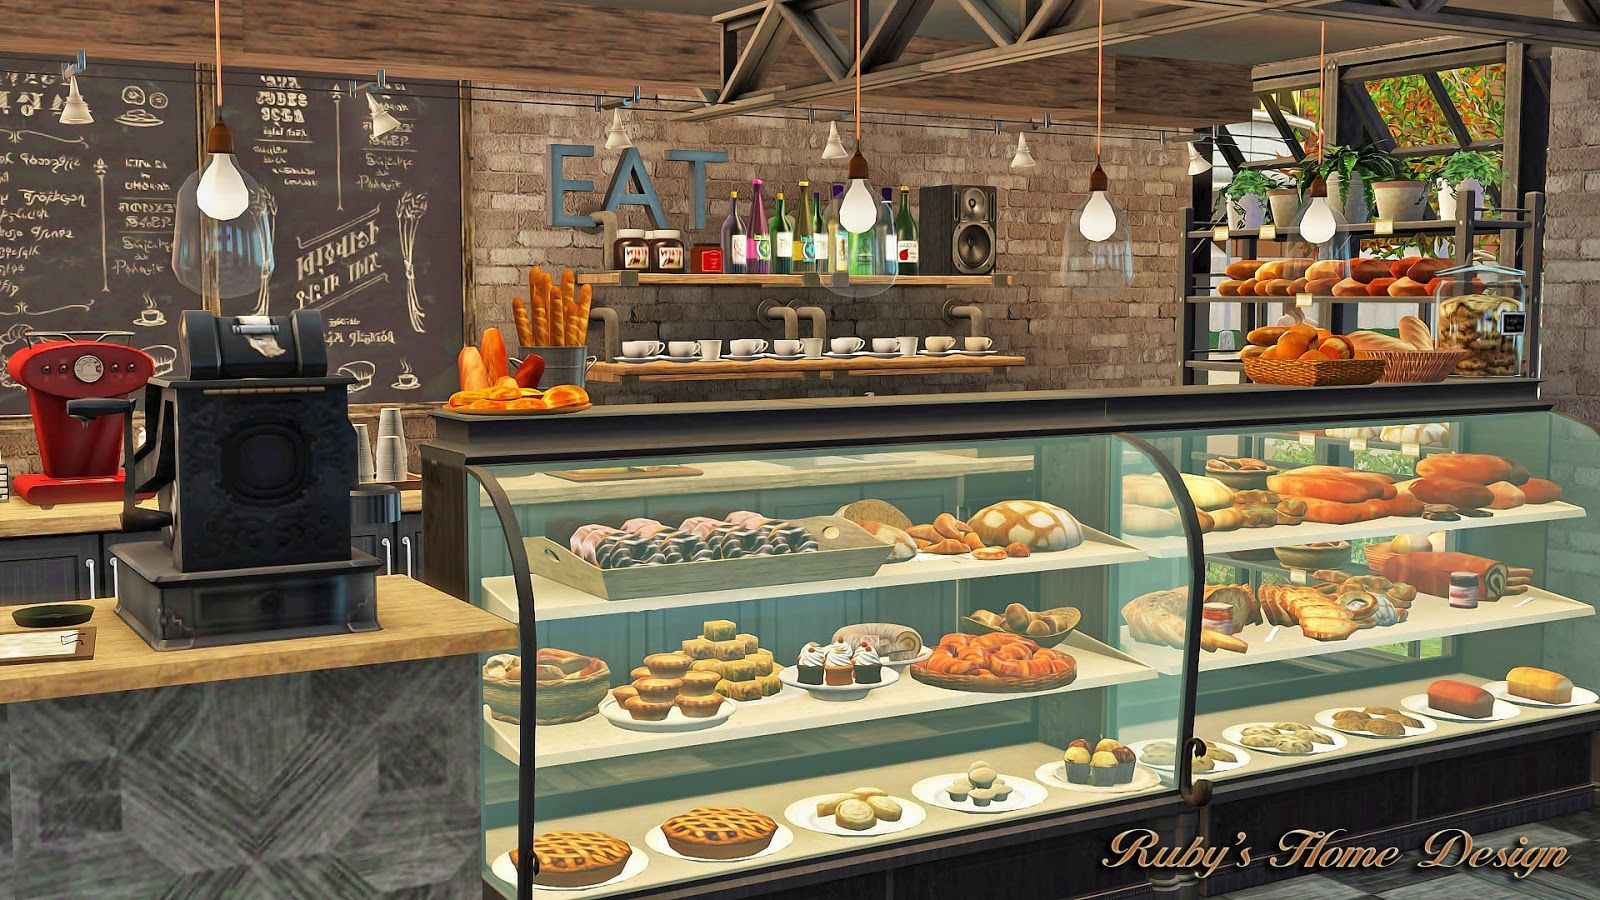 sims 3 bakery tumblr - Google Search | The Sims 3 Decor/Design ...